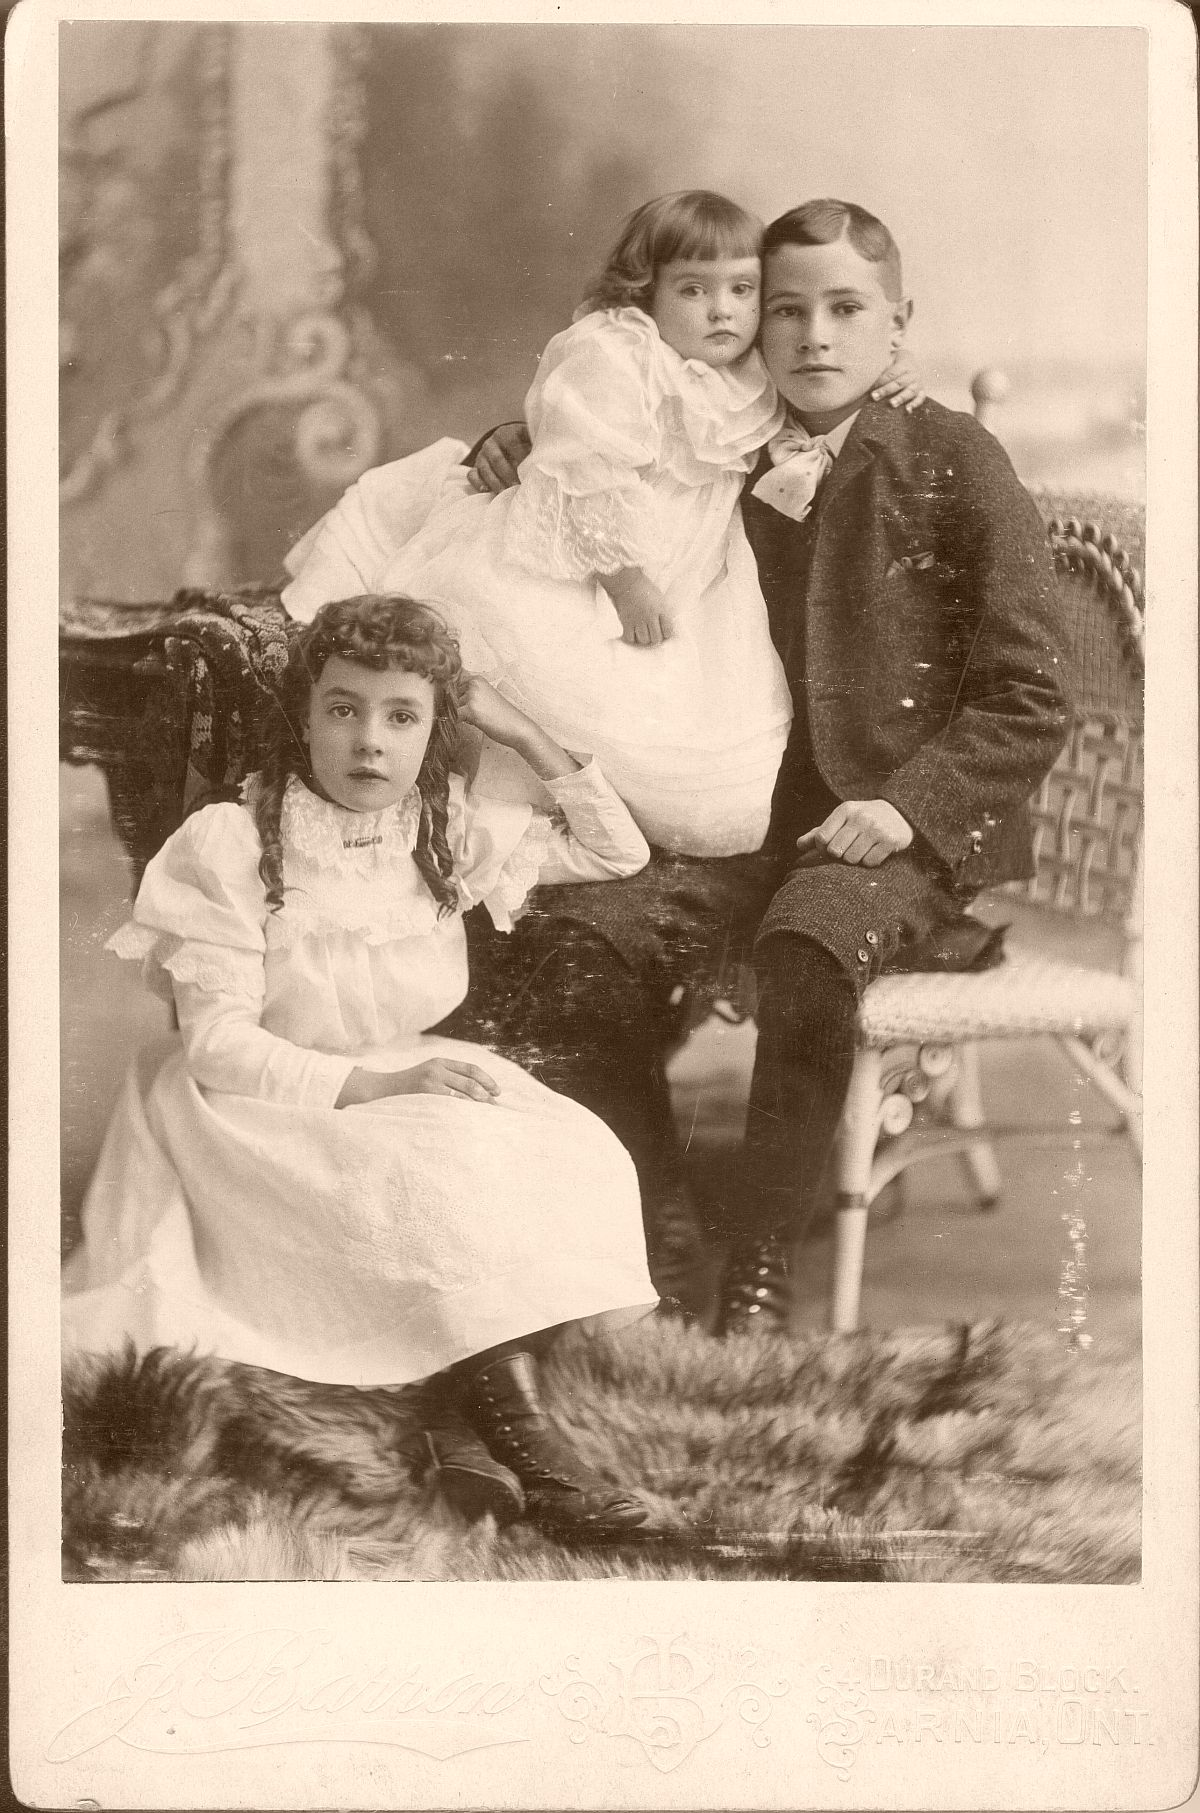 cabinet-cards-1870s-to-1880s-vintage-19th-century-victorian-era-09